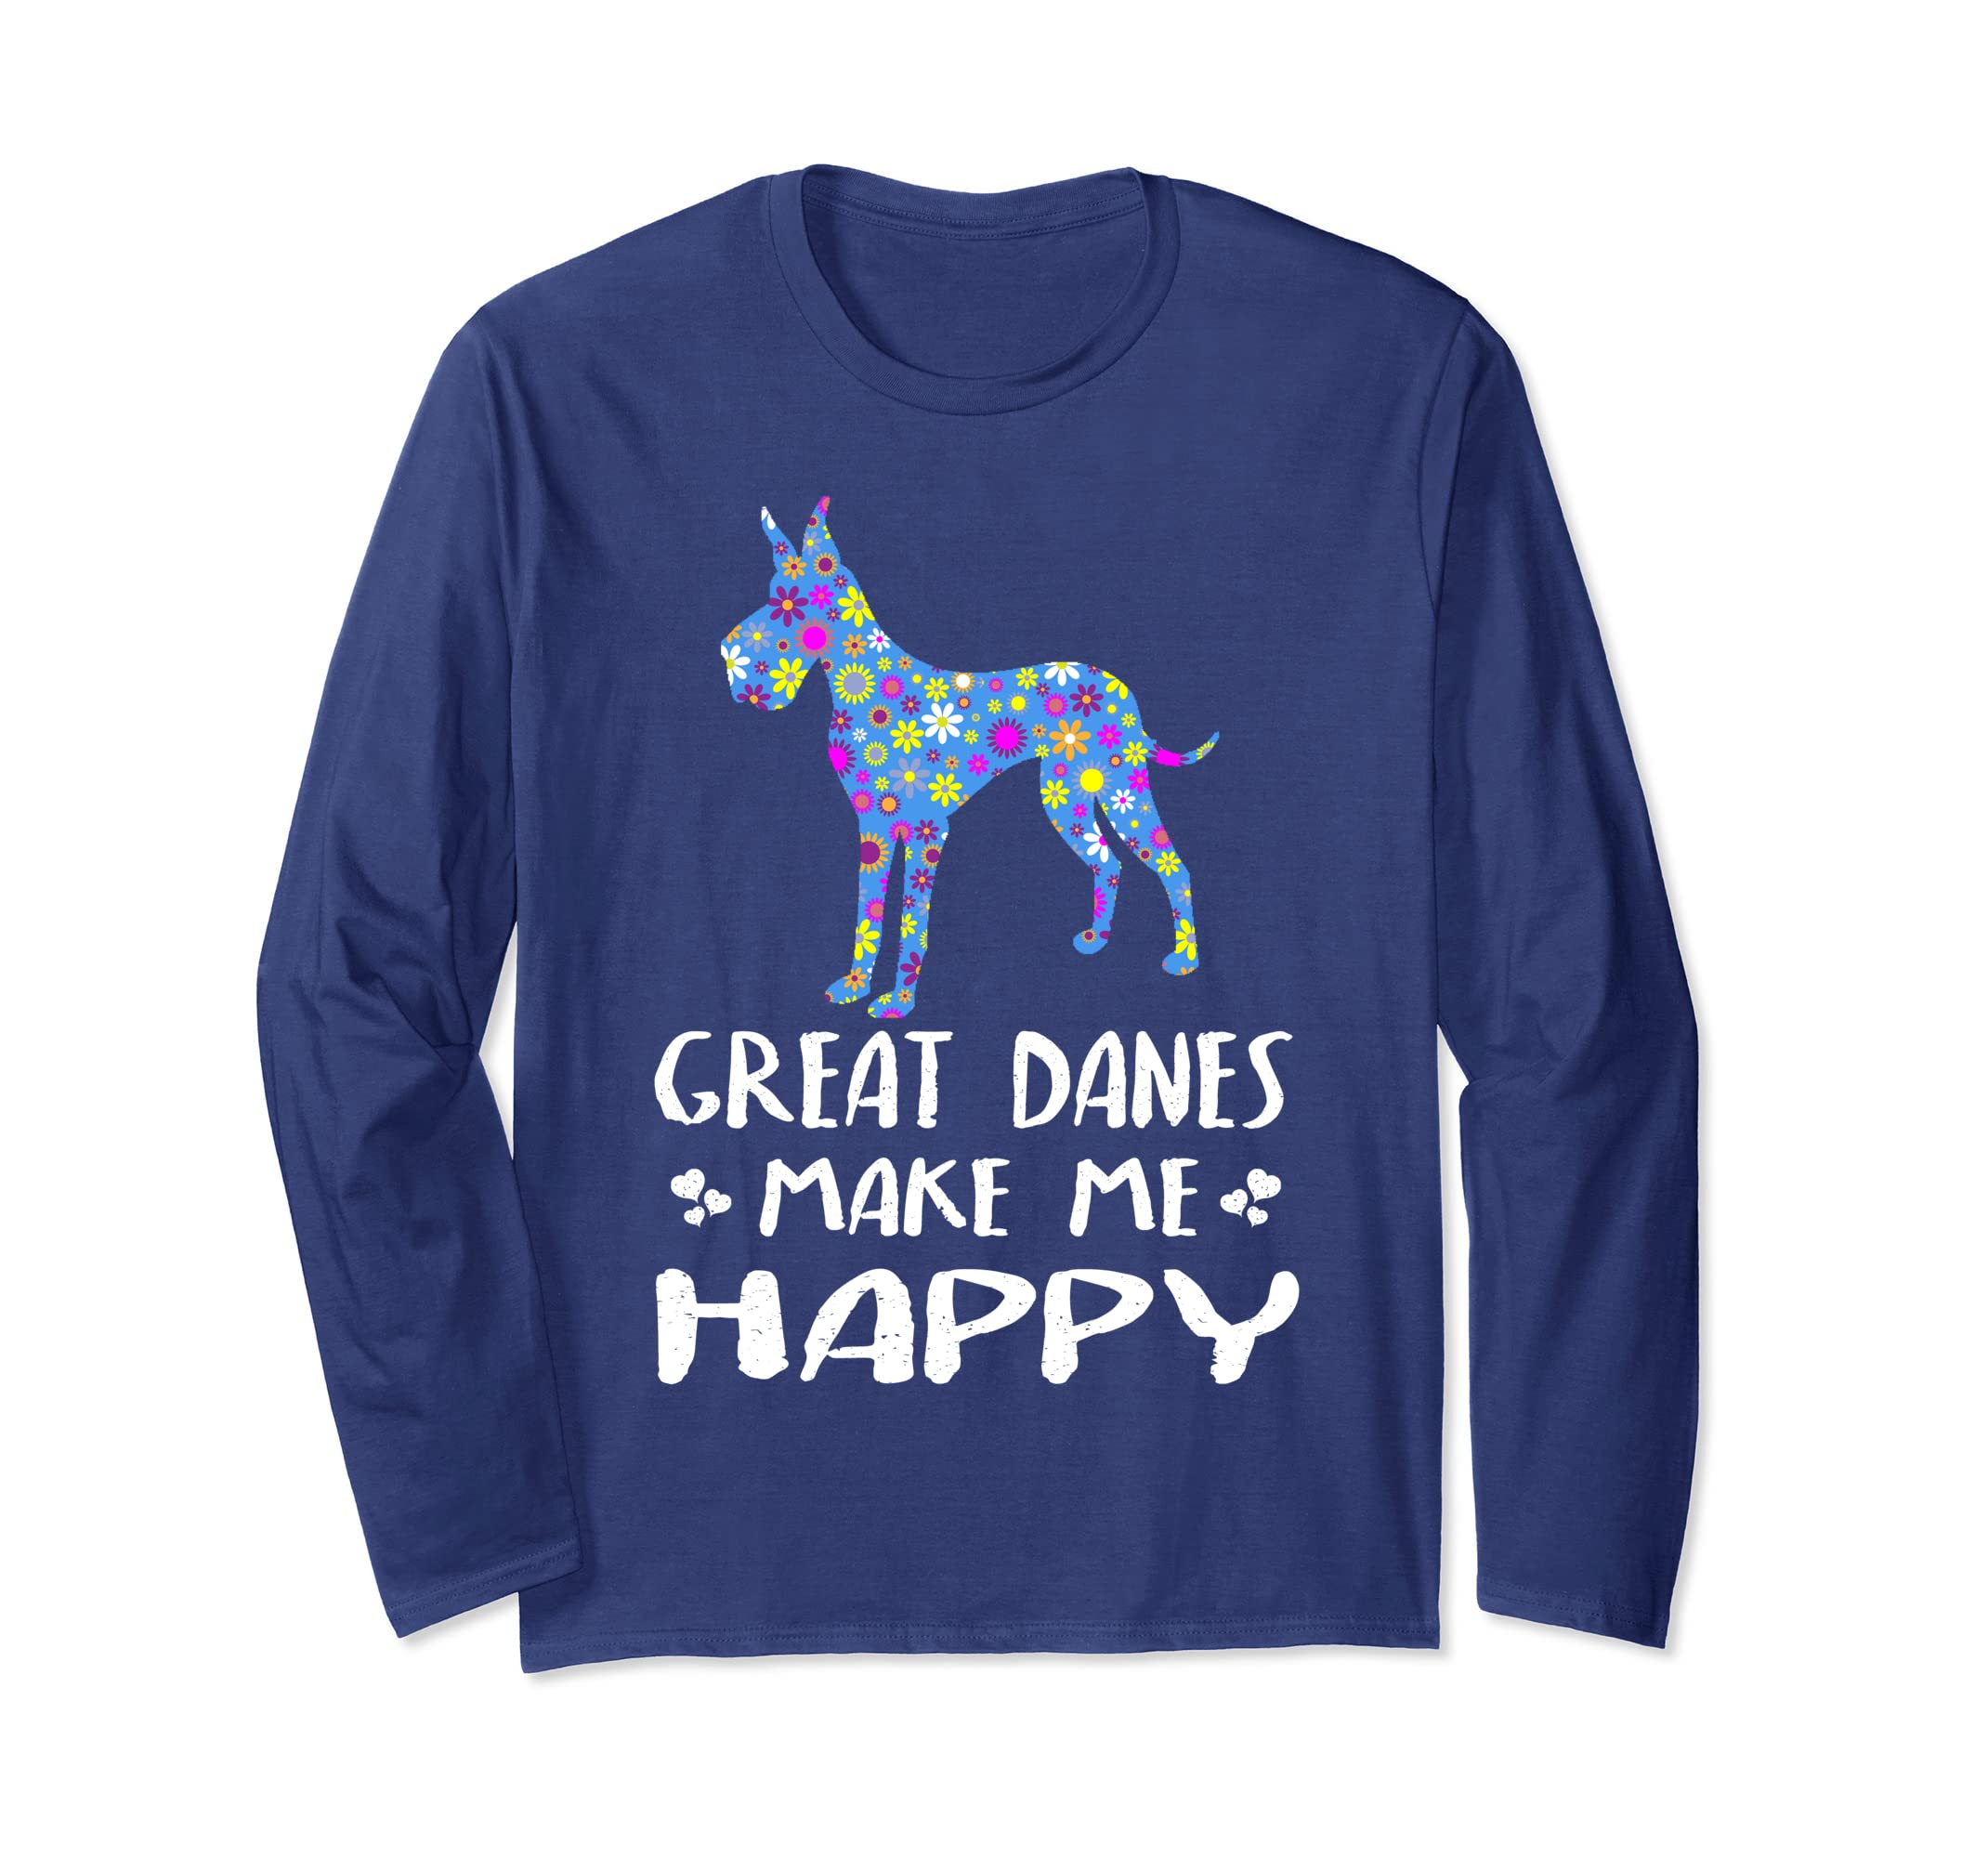 1658506a Amazon.com: Great Danes Make Me Happy - Cute Floral Dog Gifts For Women  Long Sleeve T-Shirt: Clothing